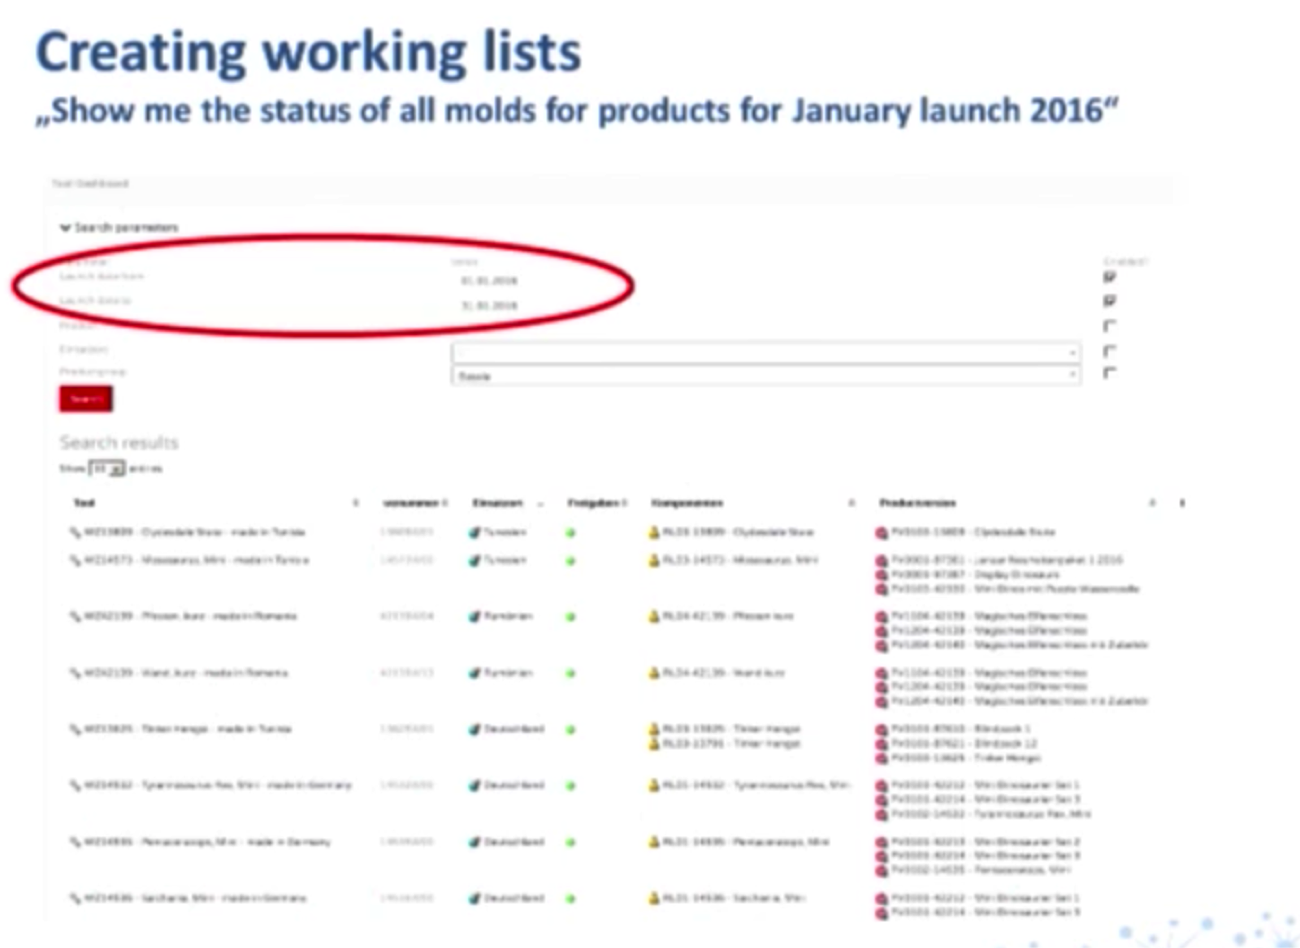 A Working List for Product Approvals